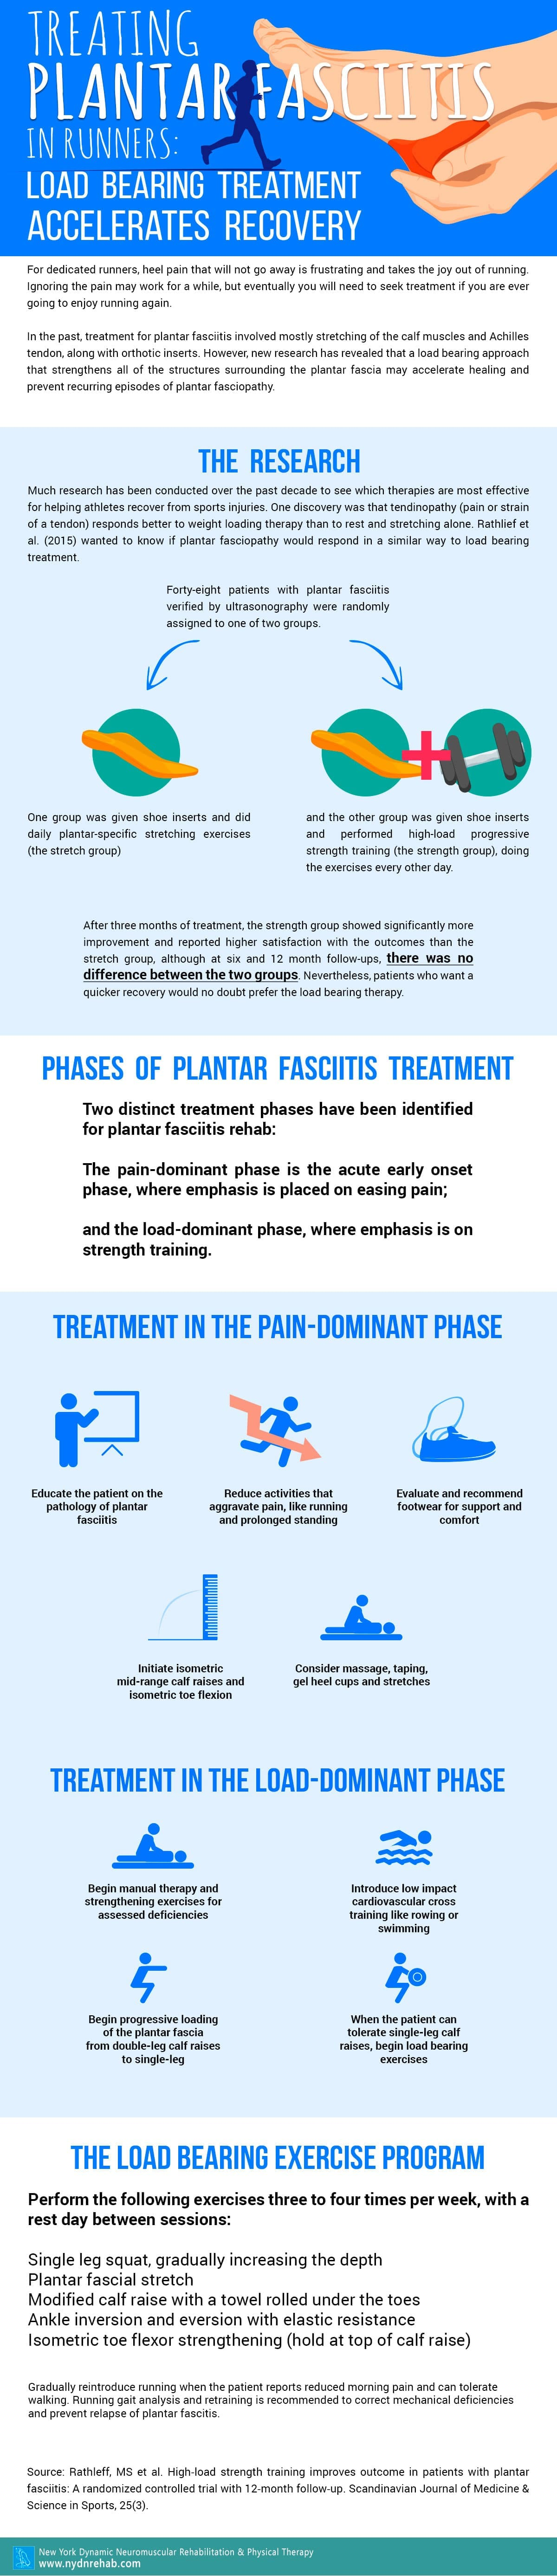 Treating Plantar Fasciitis in Runners: Load Bearing Treatment Accelerates Recovery Blog